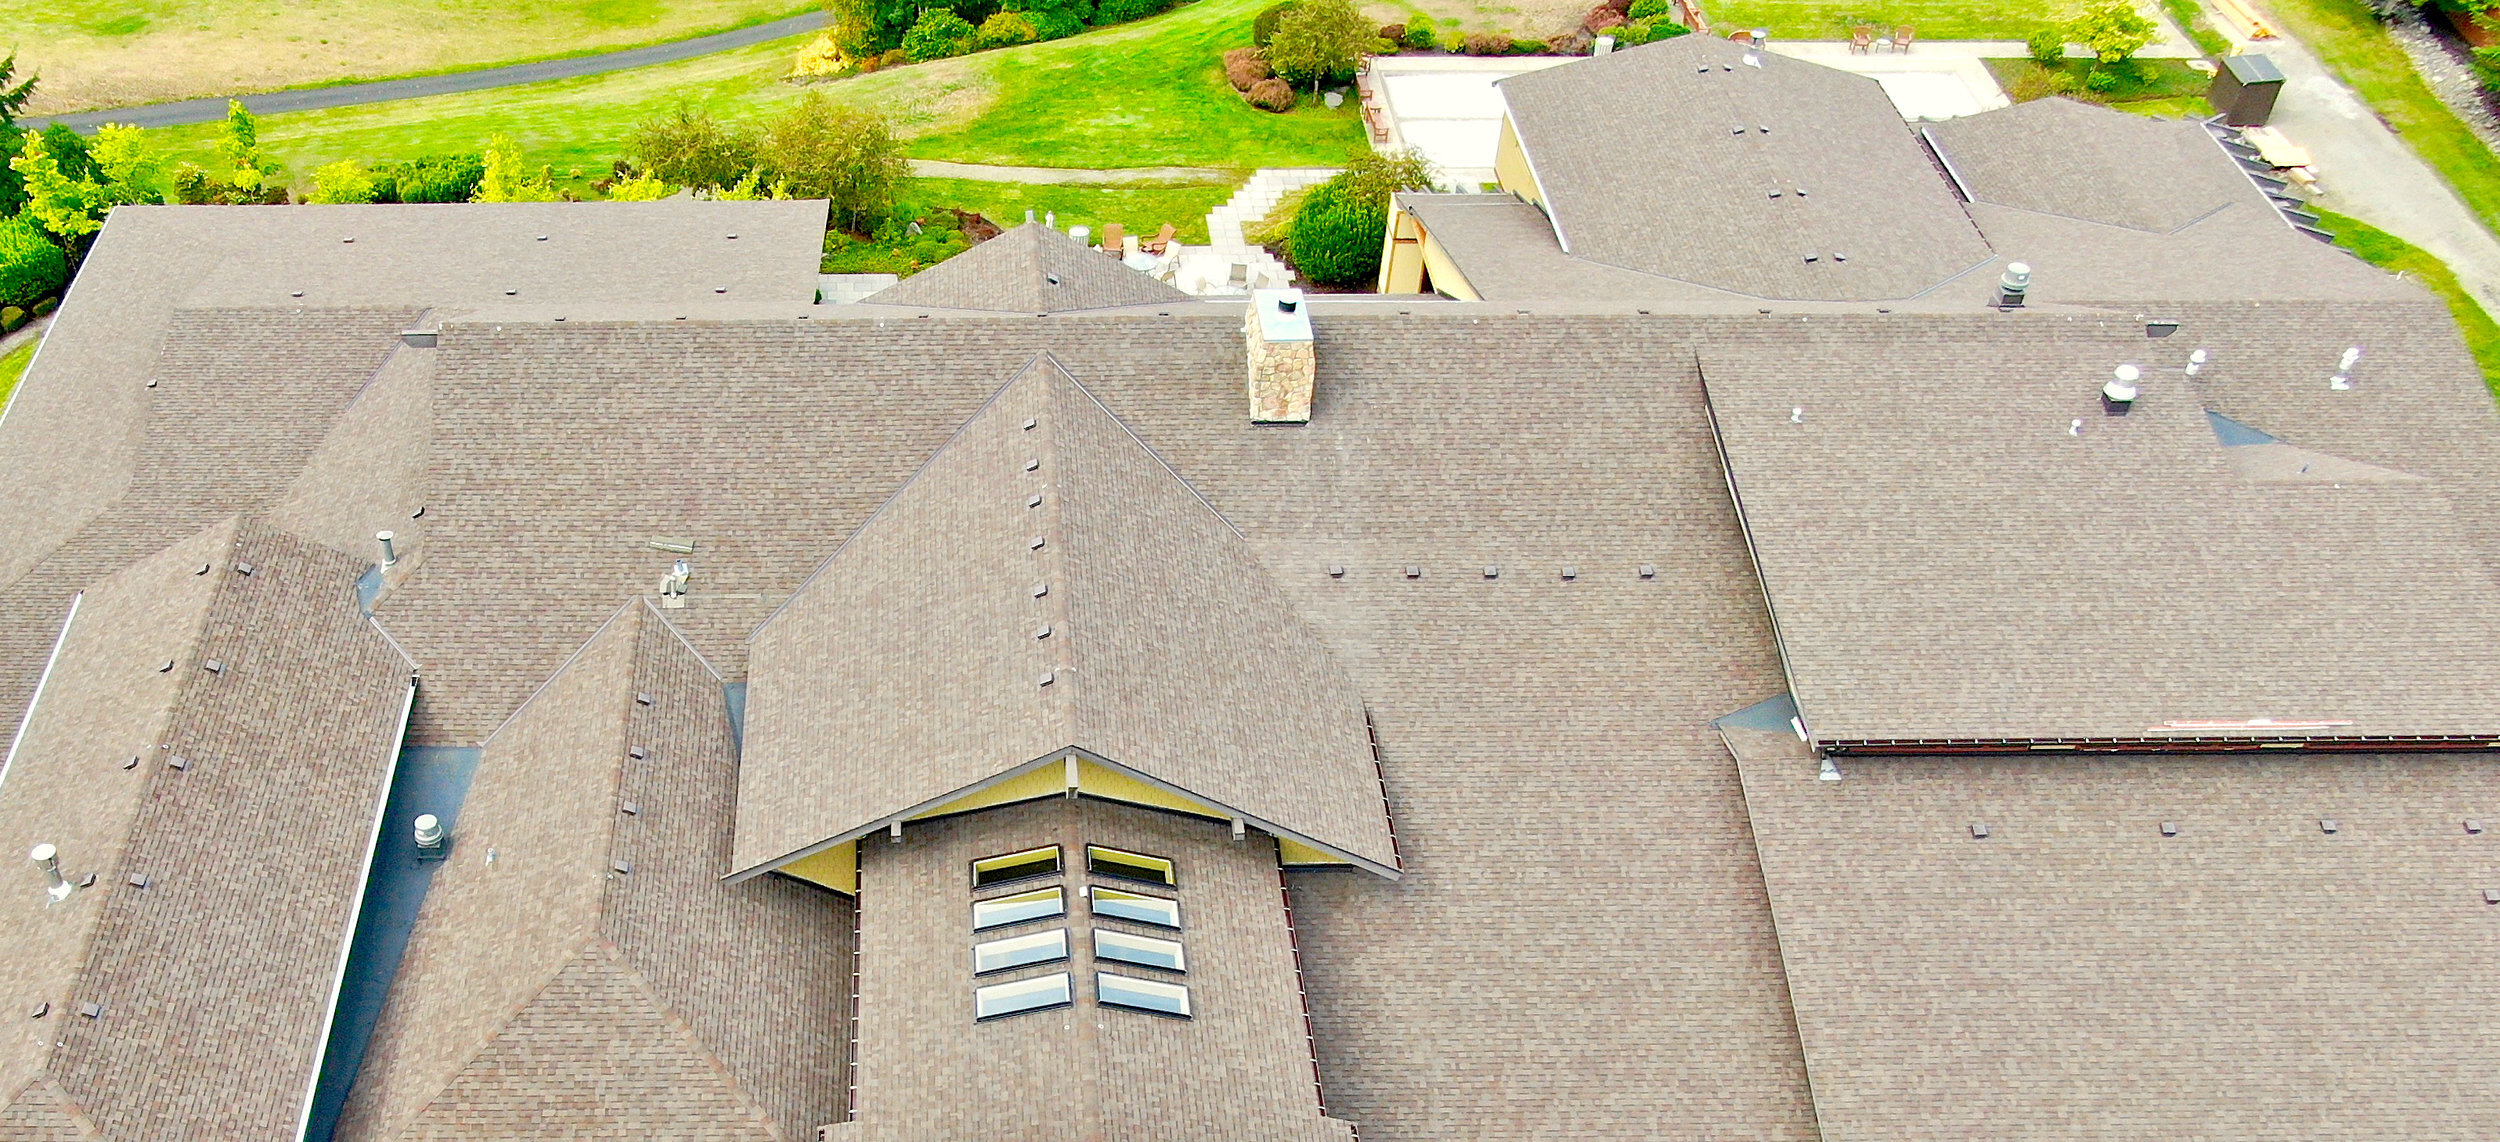 Finished Multifamily New Construction Asphalt Shingle Roofing Project In Lacey, Washington